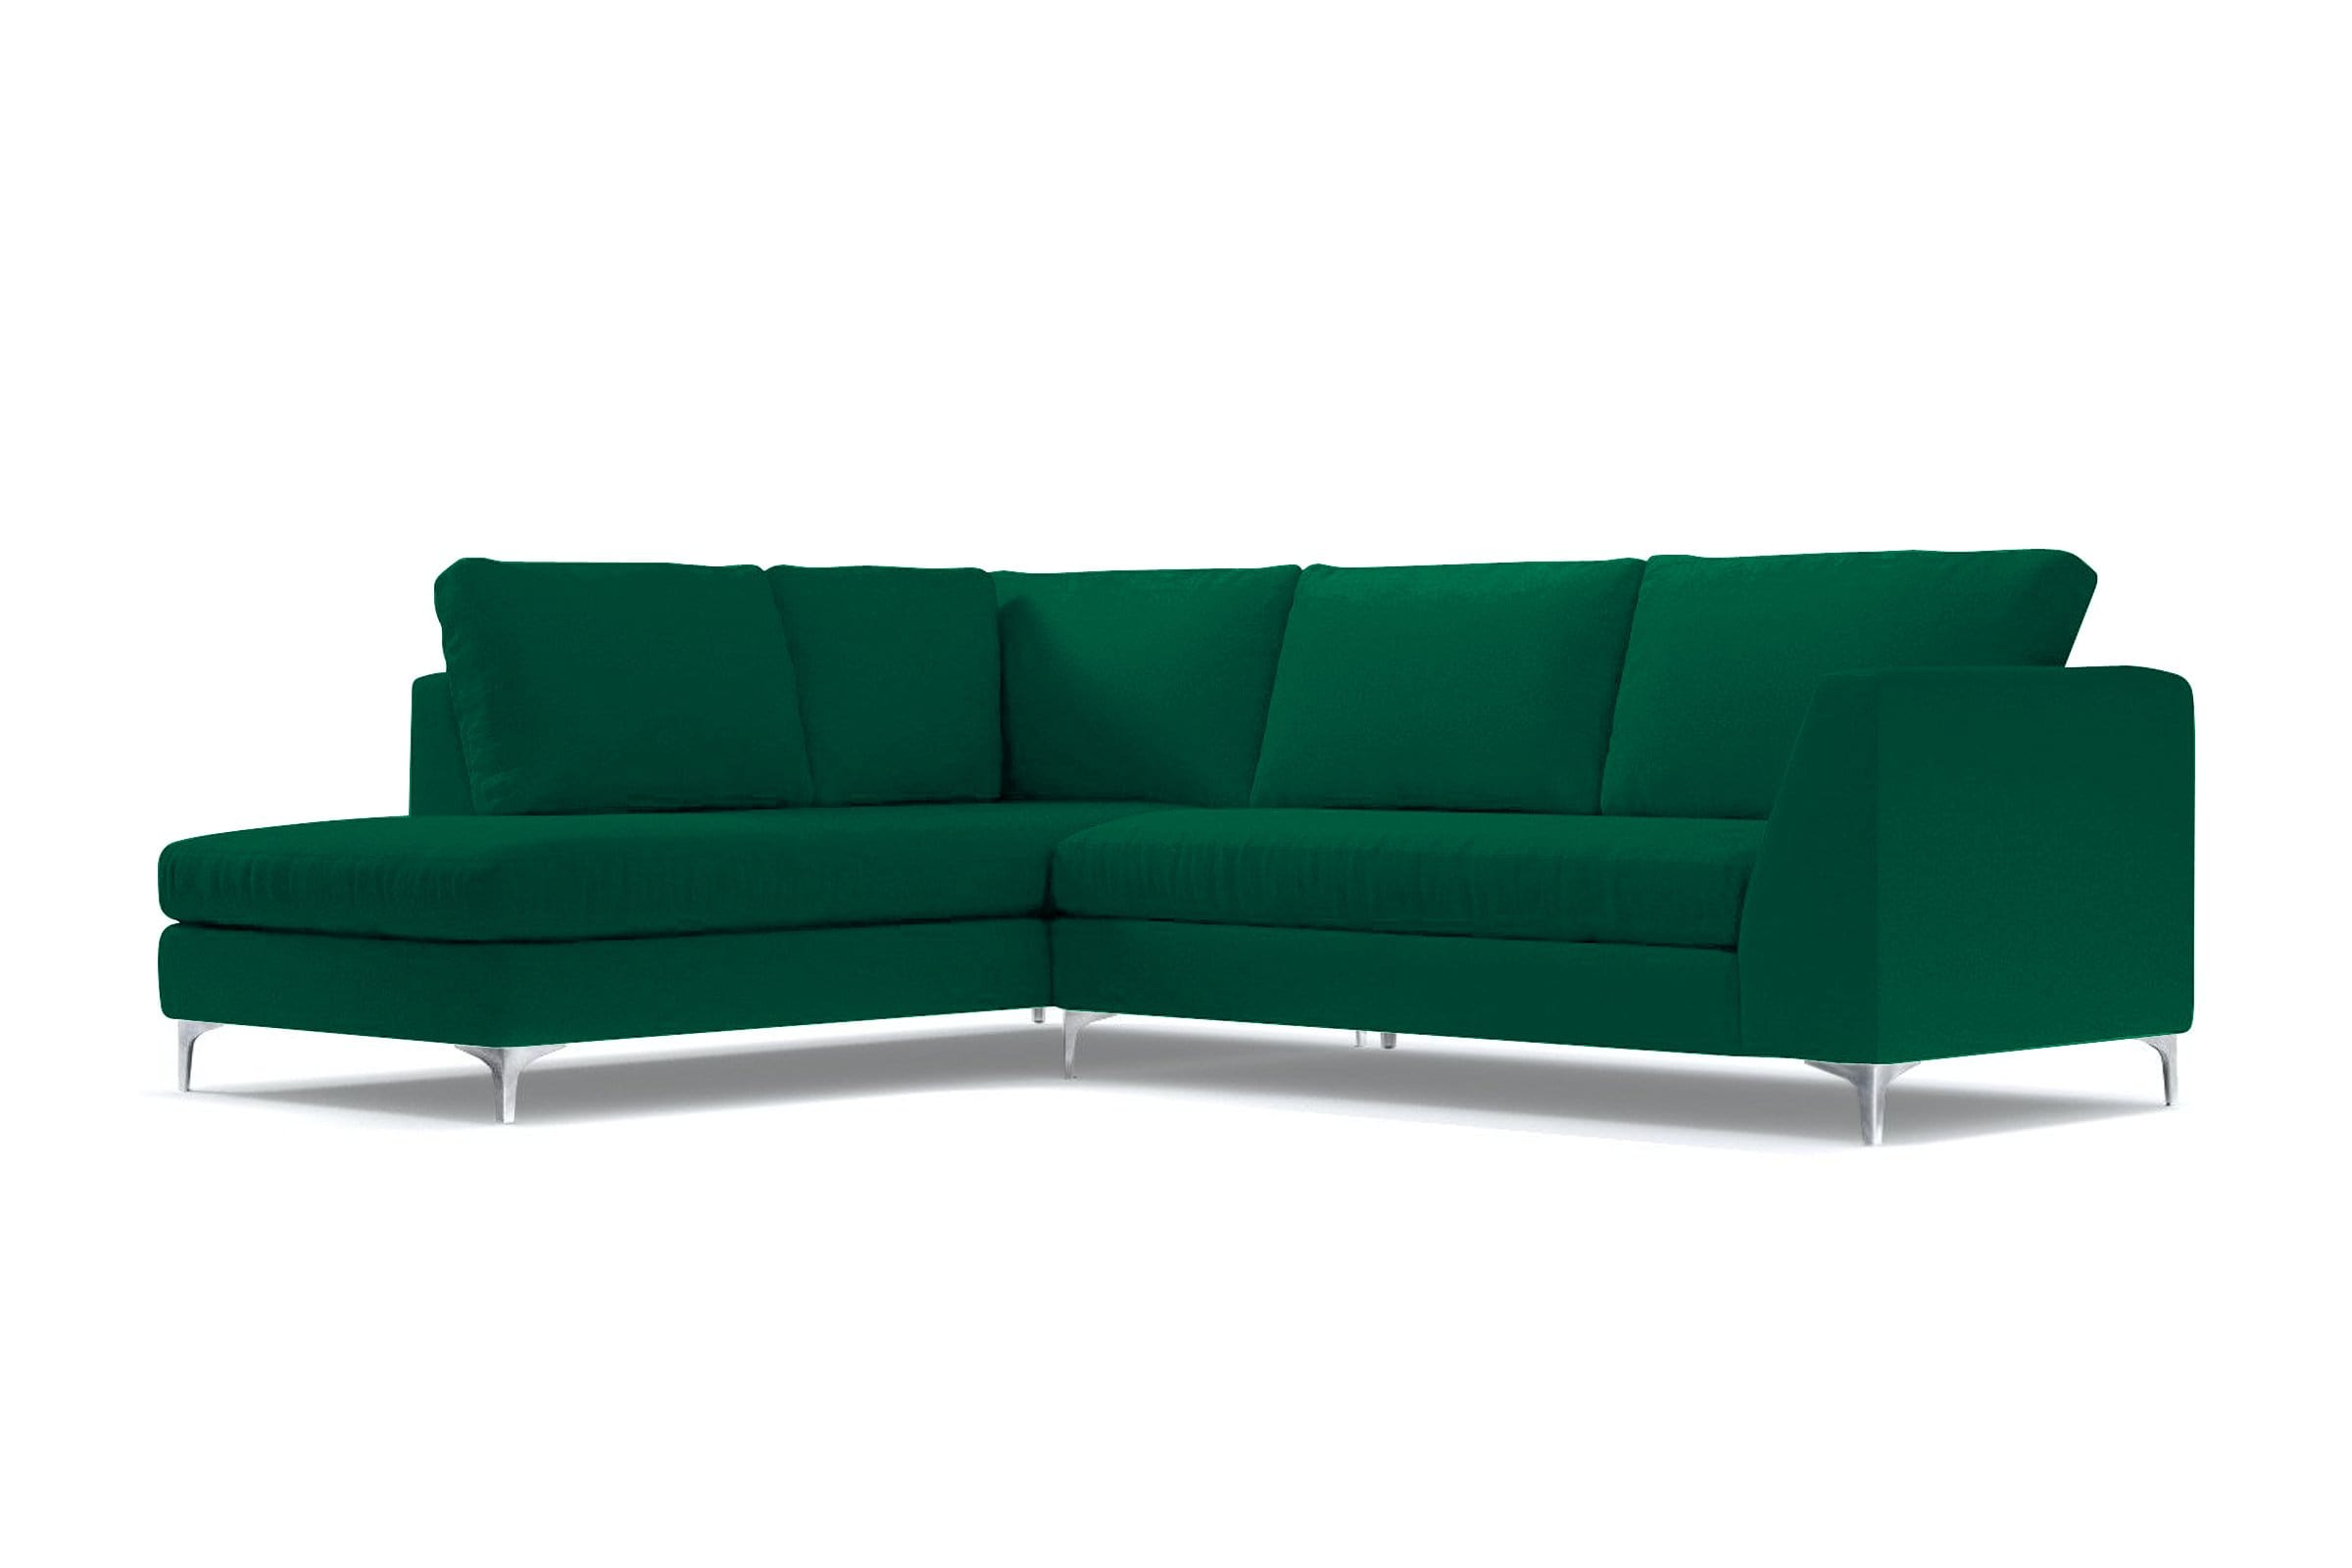 Mulholland 2pc Sectional Sofa - Green Velvet - Modern Sectional Sofa Made in USA - Sold by Apt2B